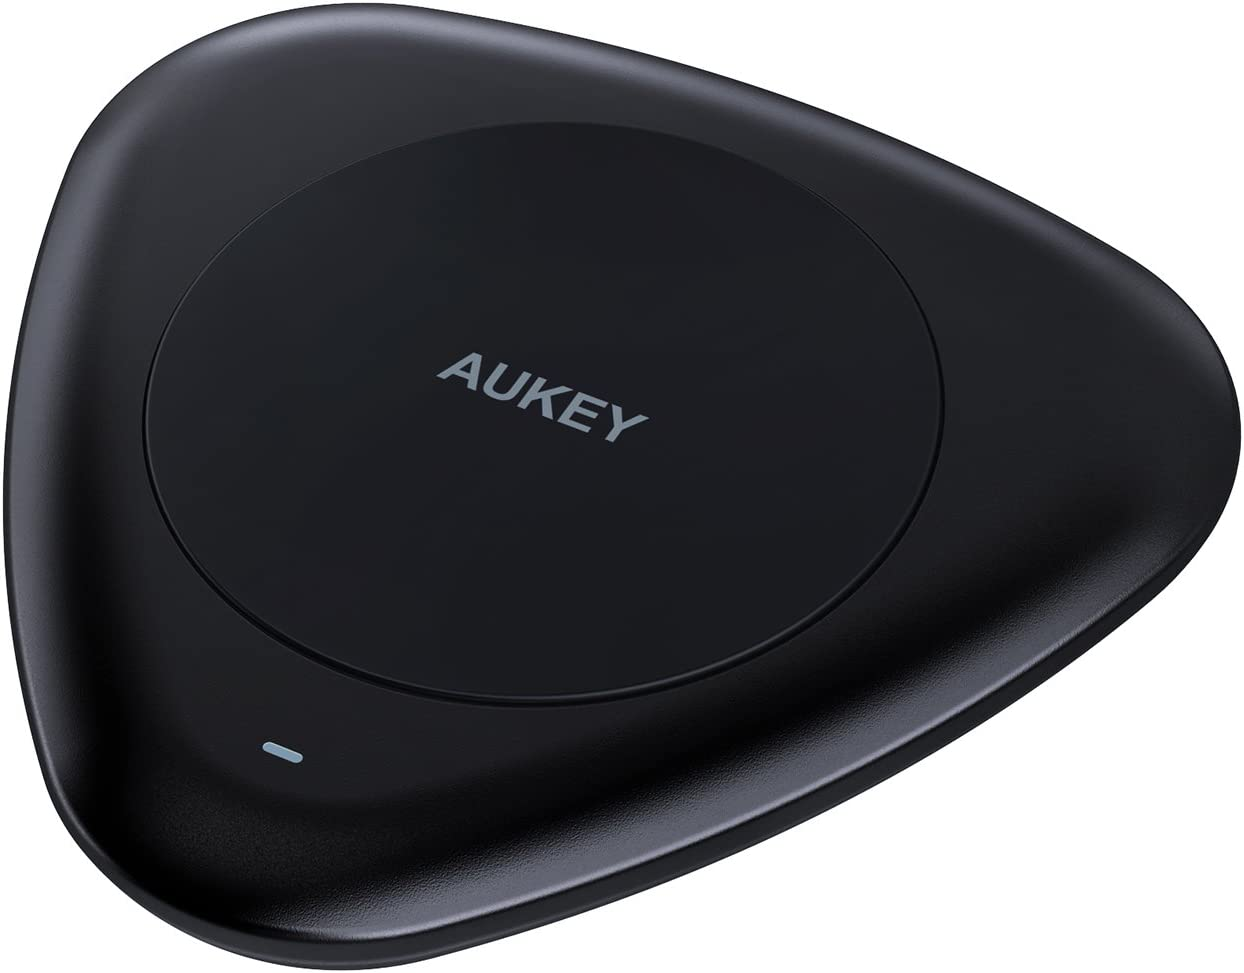 AUKEY Wireless Charger with USB C Input, Compatible with Quick Charge 2.0 Devices, for Qi Device like Google Nexus 6 Nexus 5, LG G4, Limia 950, Moto